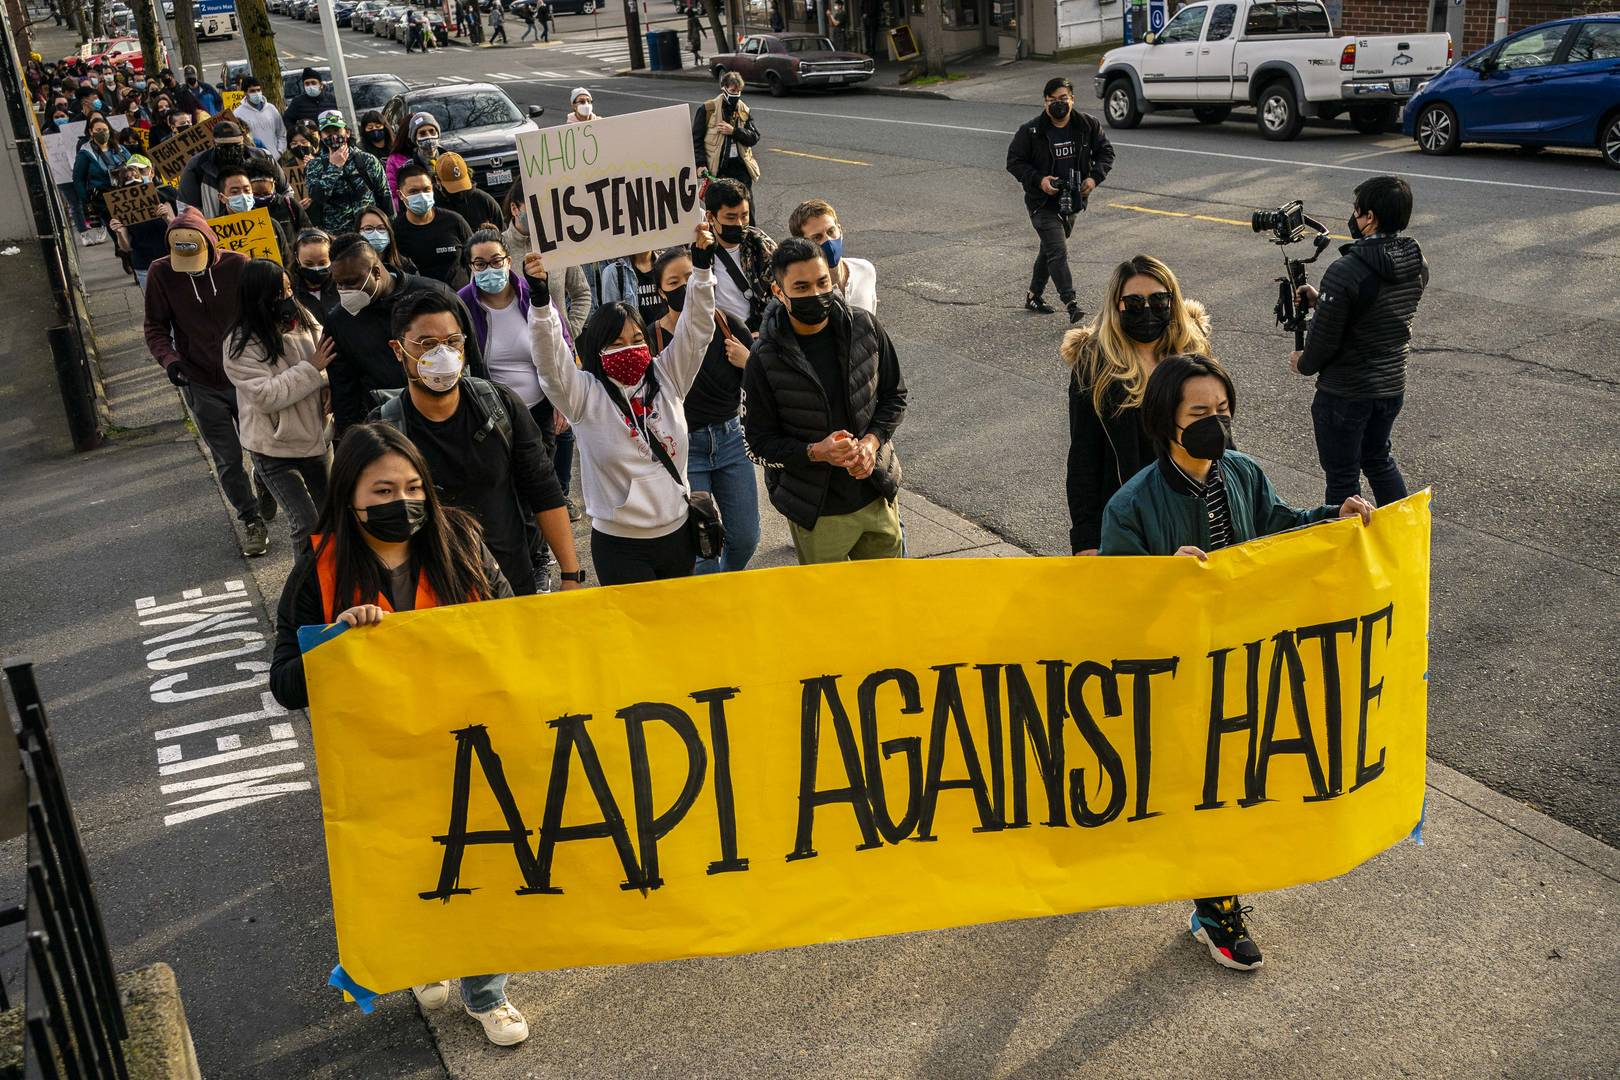 Anti-AAPI hate protesters